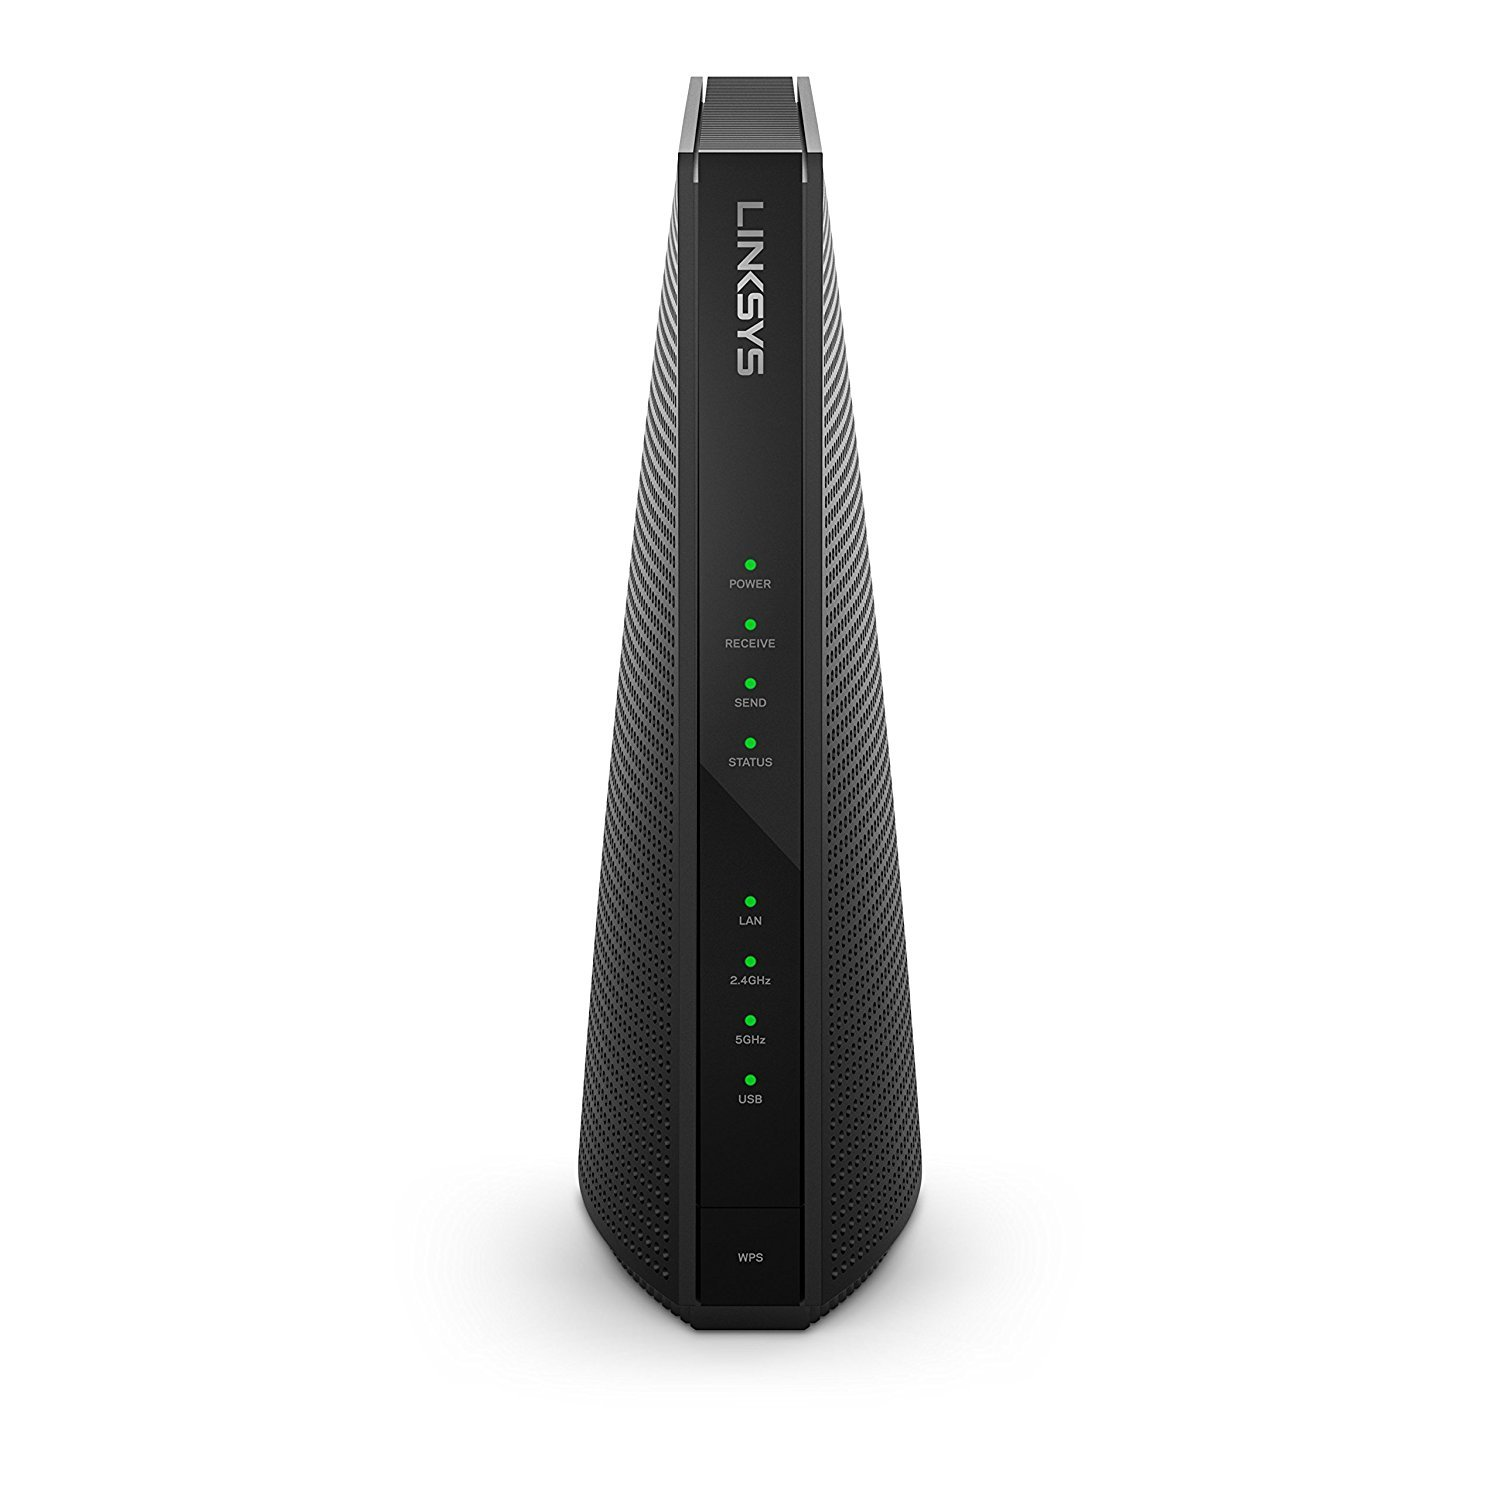 Linksys High Speed DOCSIS 3.0 24x8 AC1900 Cable Modem